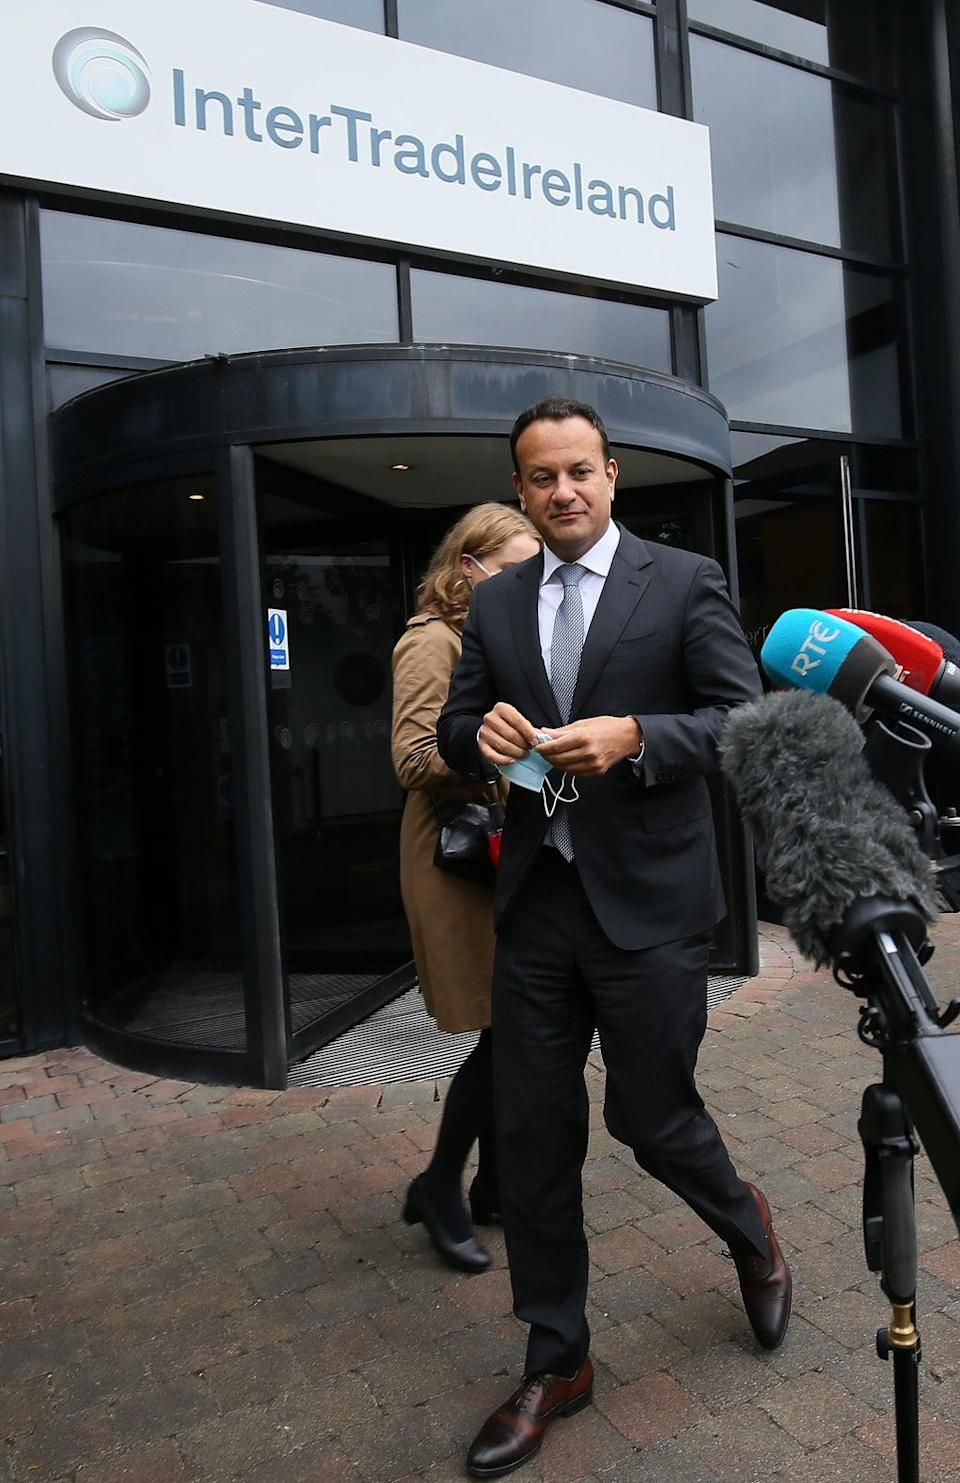 Tanaiste Leo Varadkar during a visit to InterTradeIreland's offices in Newry (Brian Lawless/PA) (PA Wire)